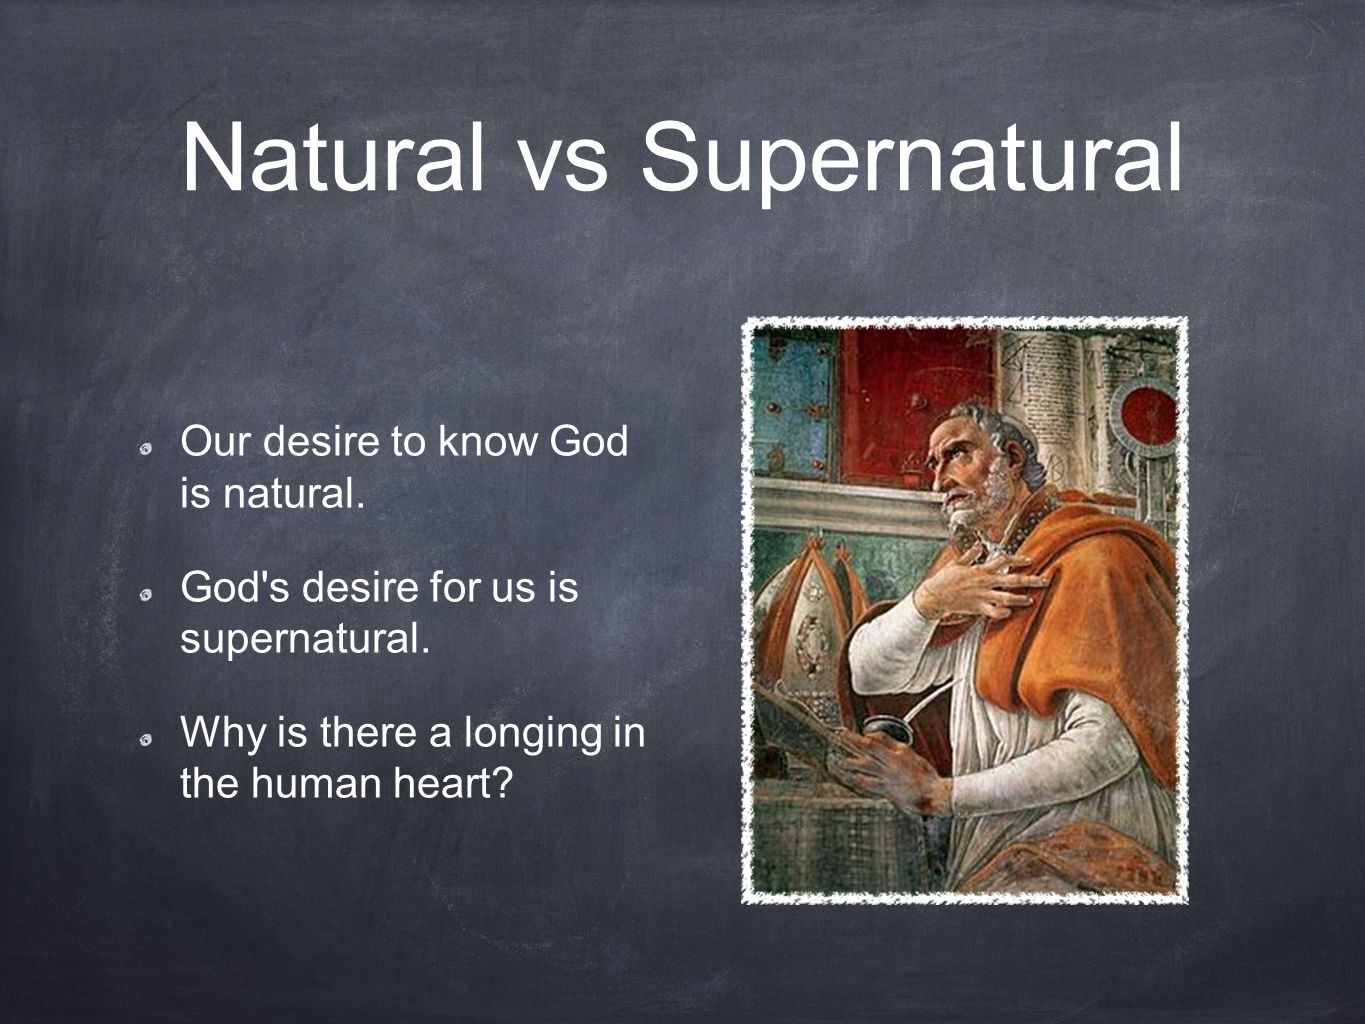 Natural vs Supernatural